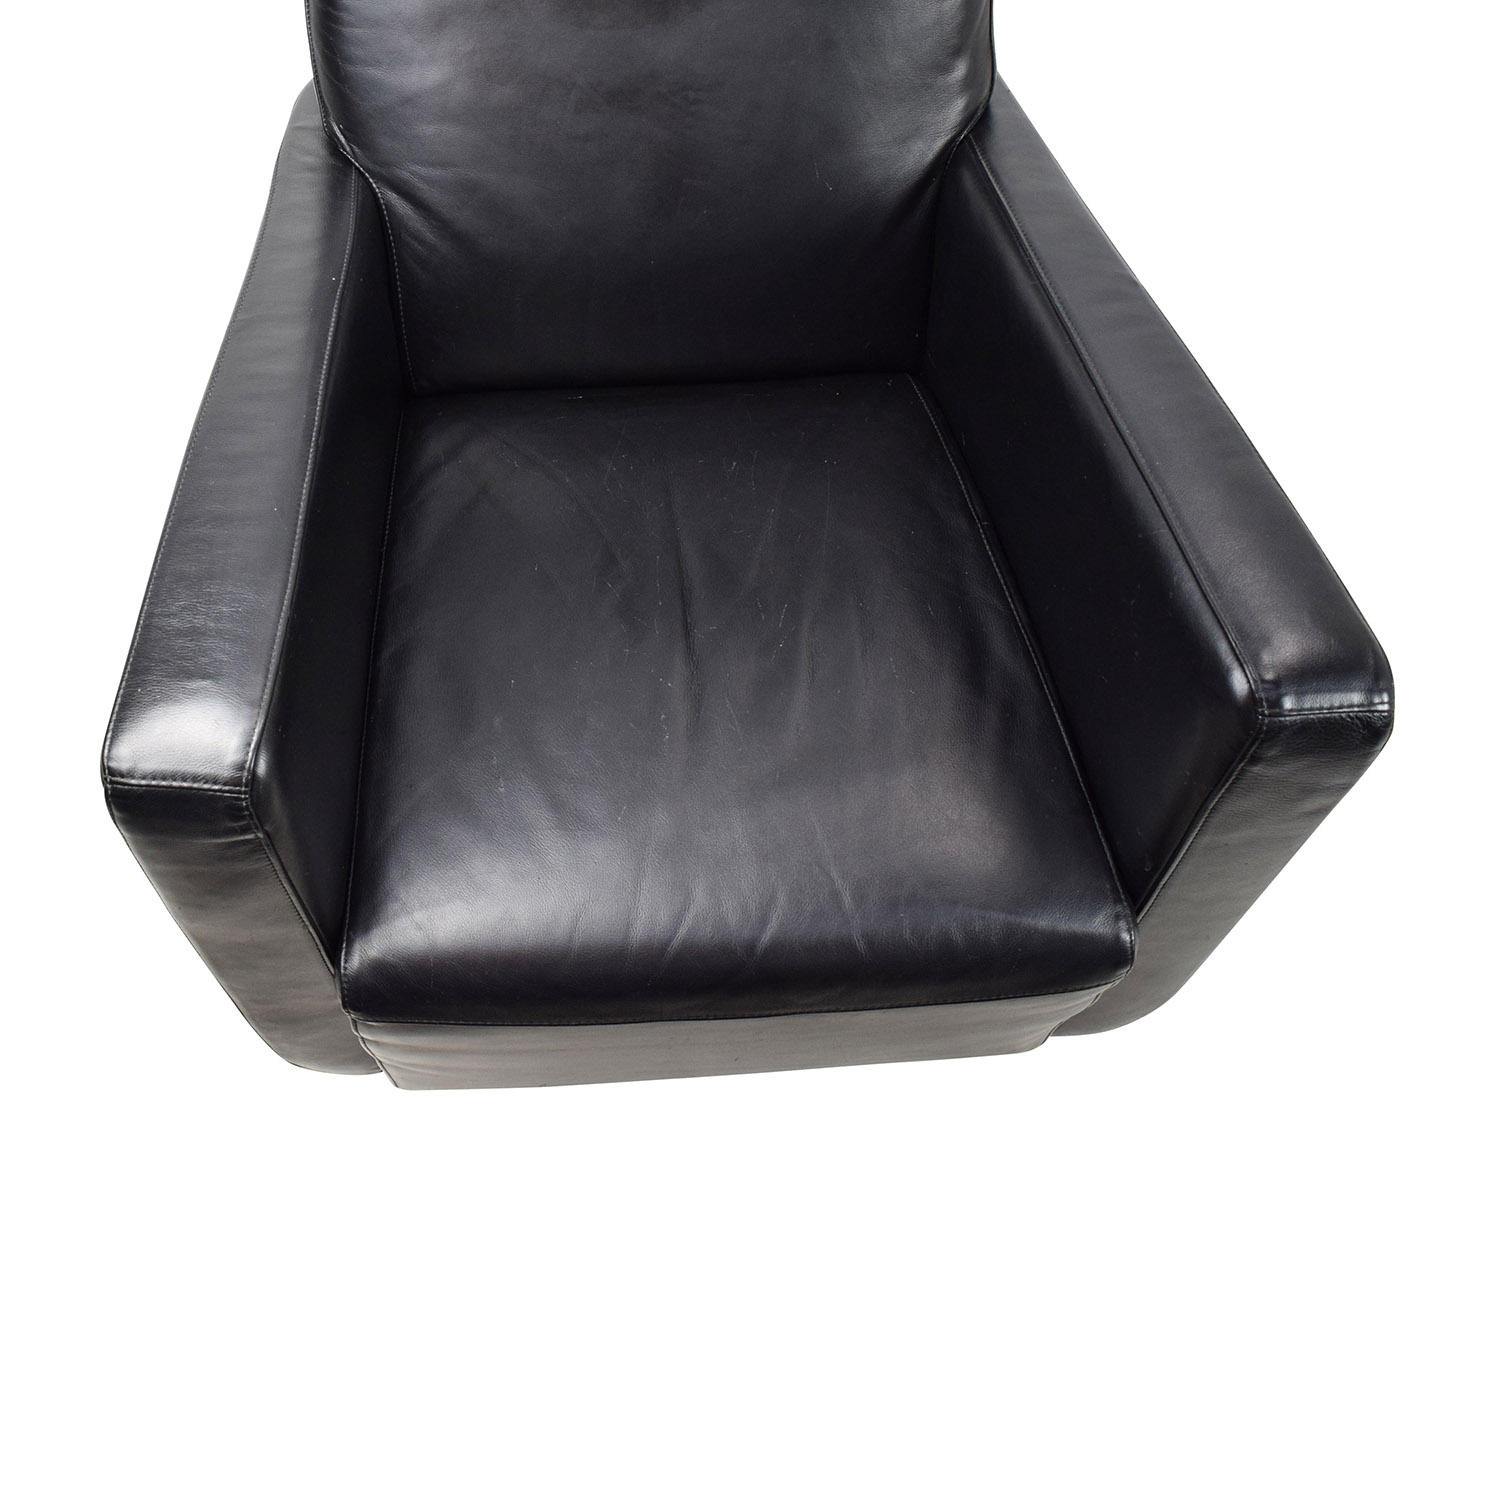 Groovy 90 Off Natuzzi Natuzzi Black Leather Swivel Chair With Ottoman Chairs Ncnpc Chair Design For Home Ncnpcorg